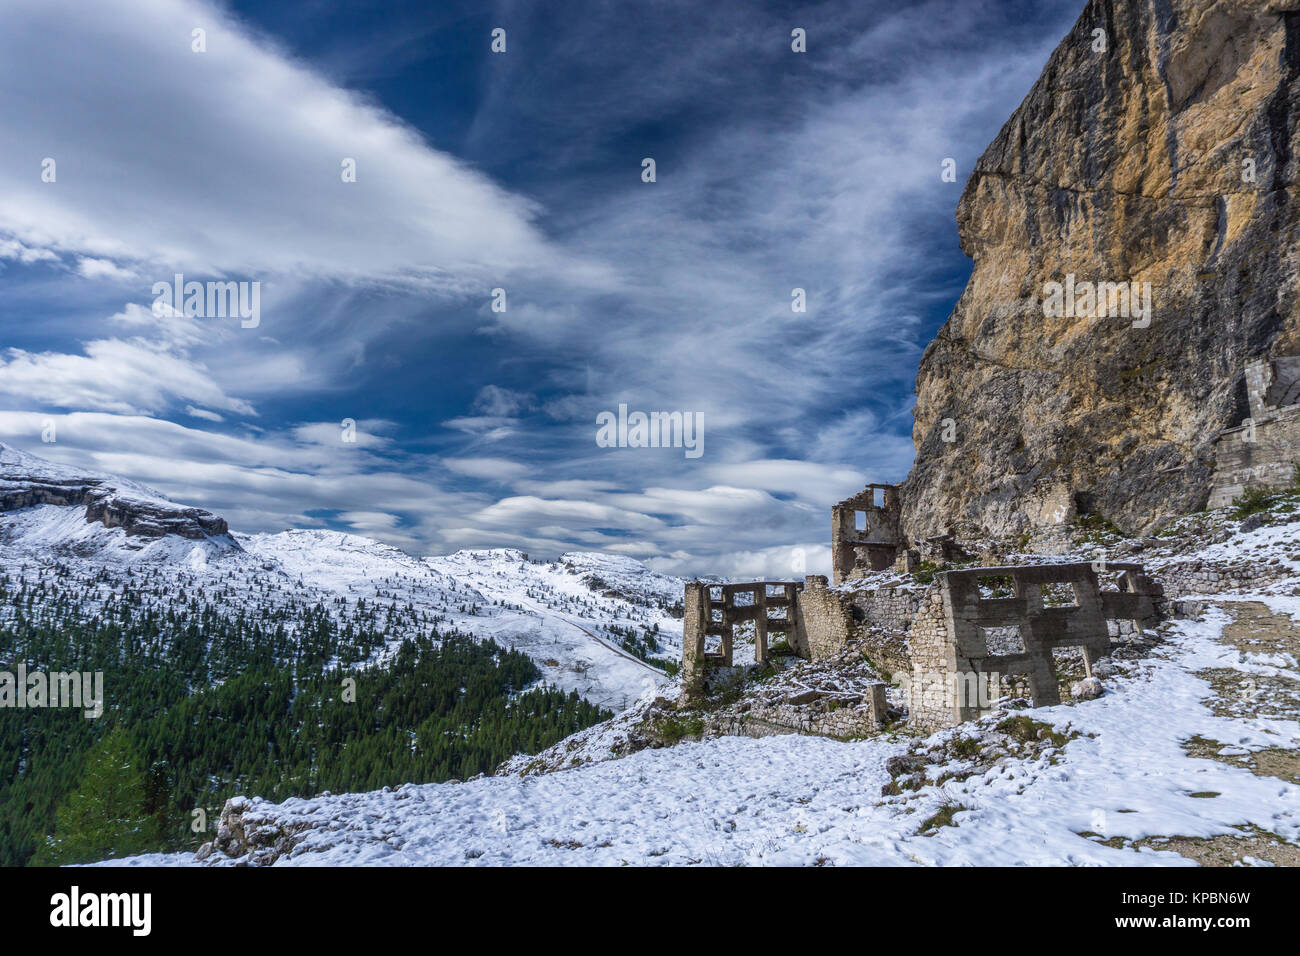 Dolomite mountain landscape after a fresh snowfall in late autumn with ruins of a World War One fortress - Stock Image